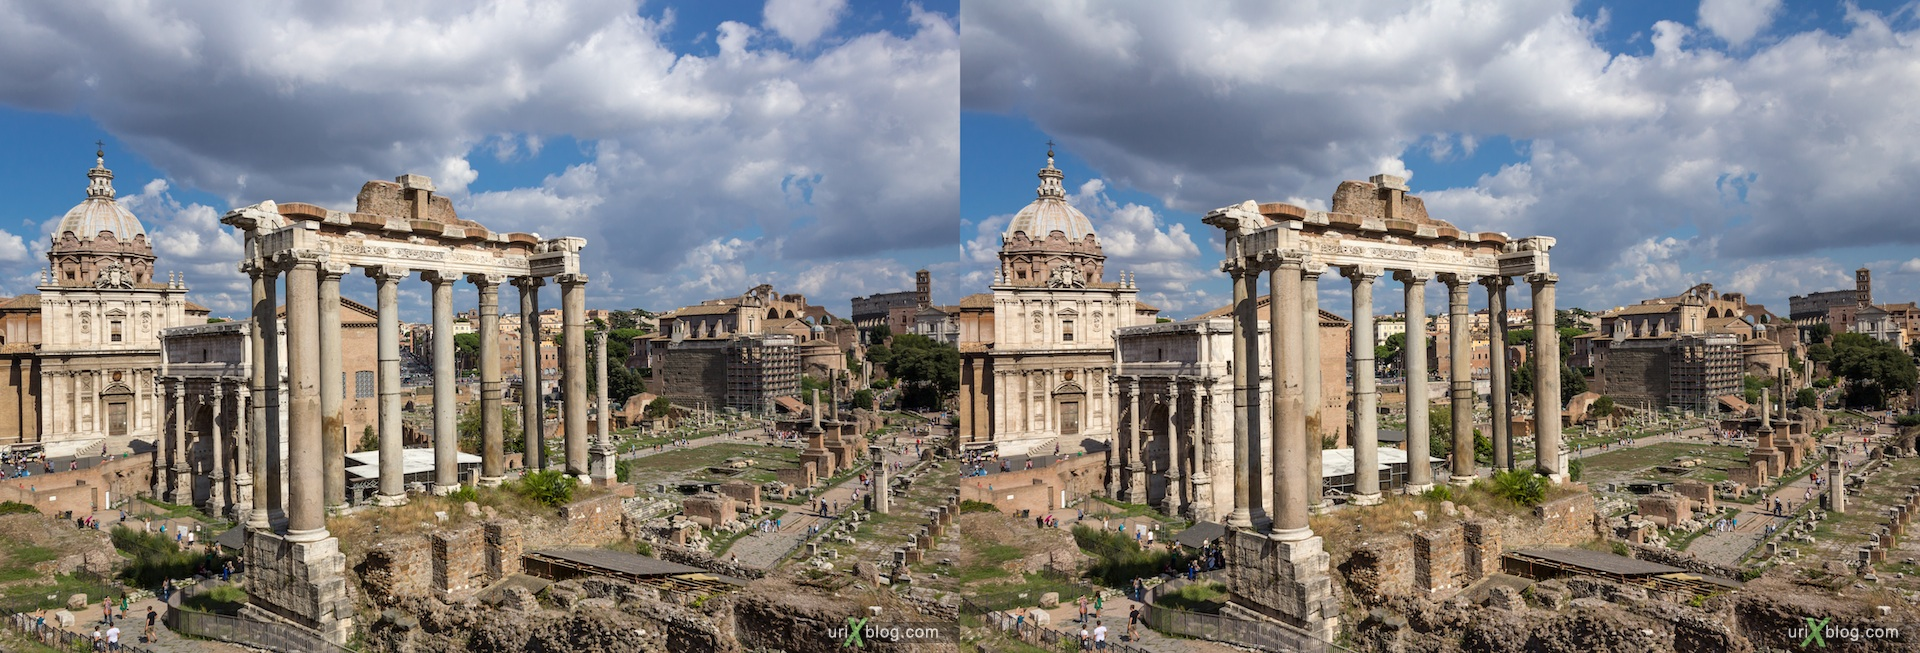 2012 Rome Forum stereo 3d